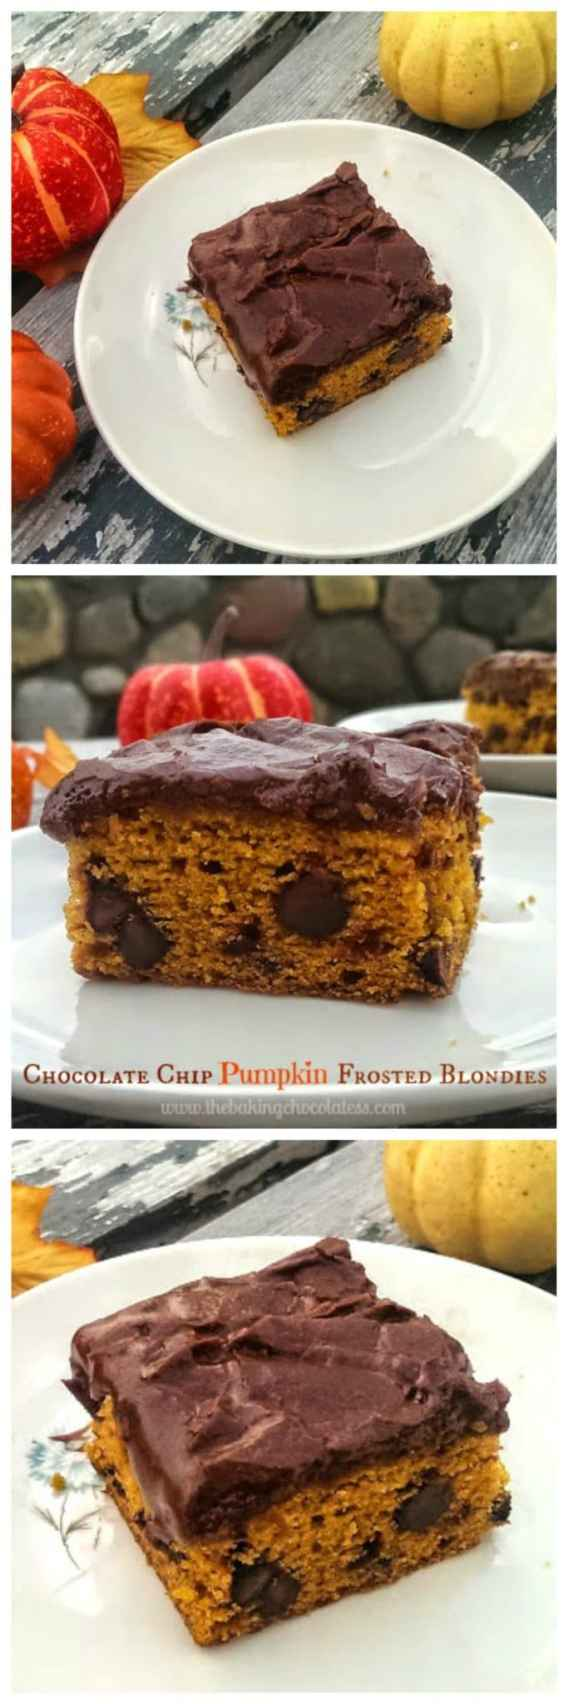 Chocolate Chip Pumpkin Frosted Blondies